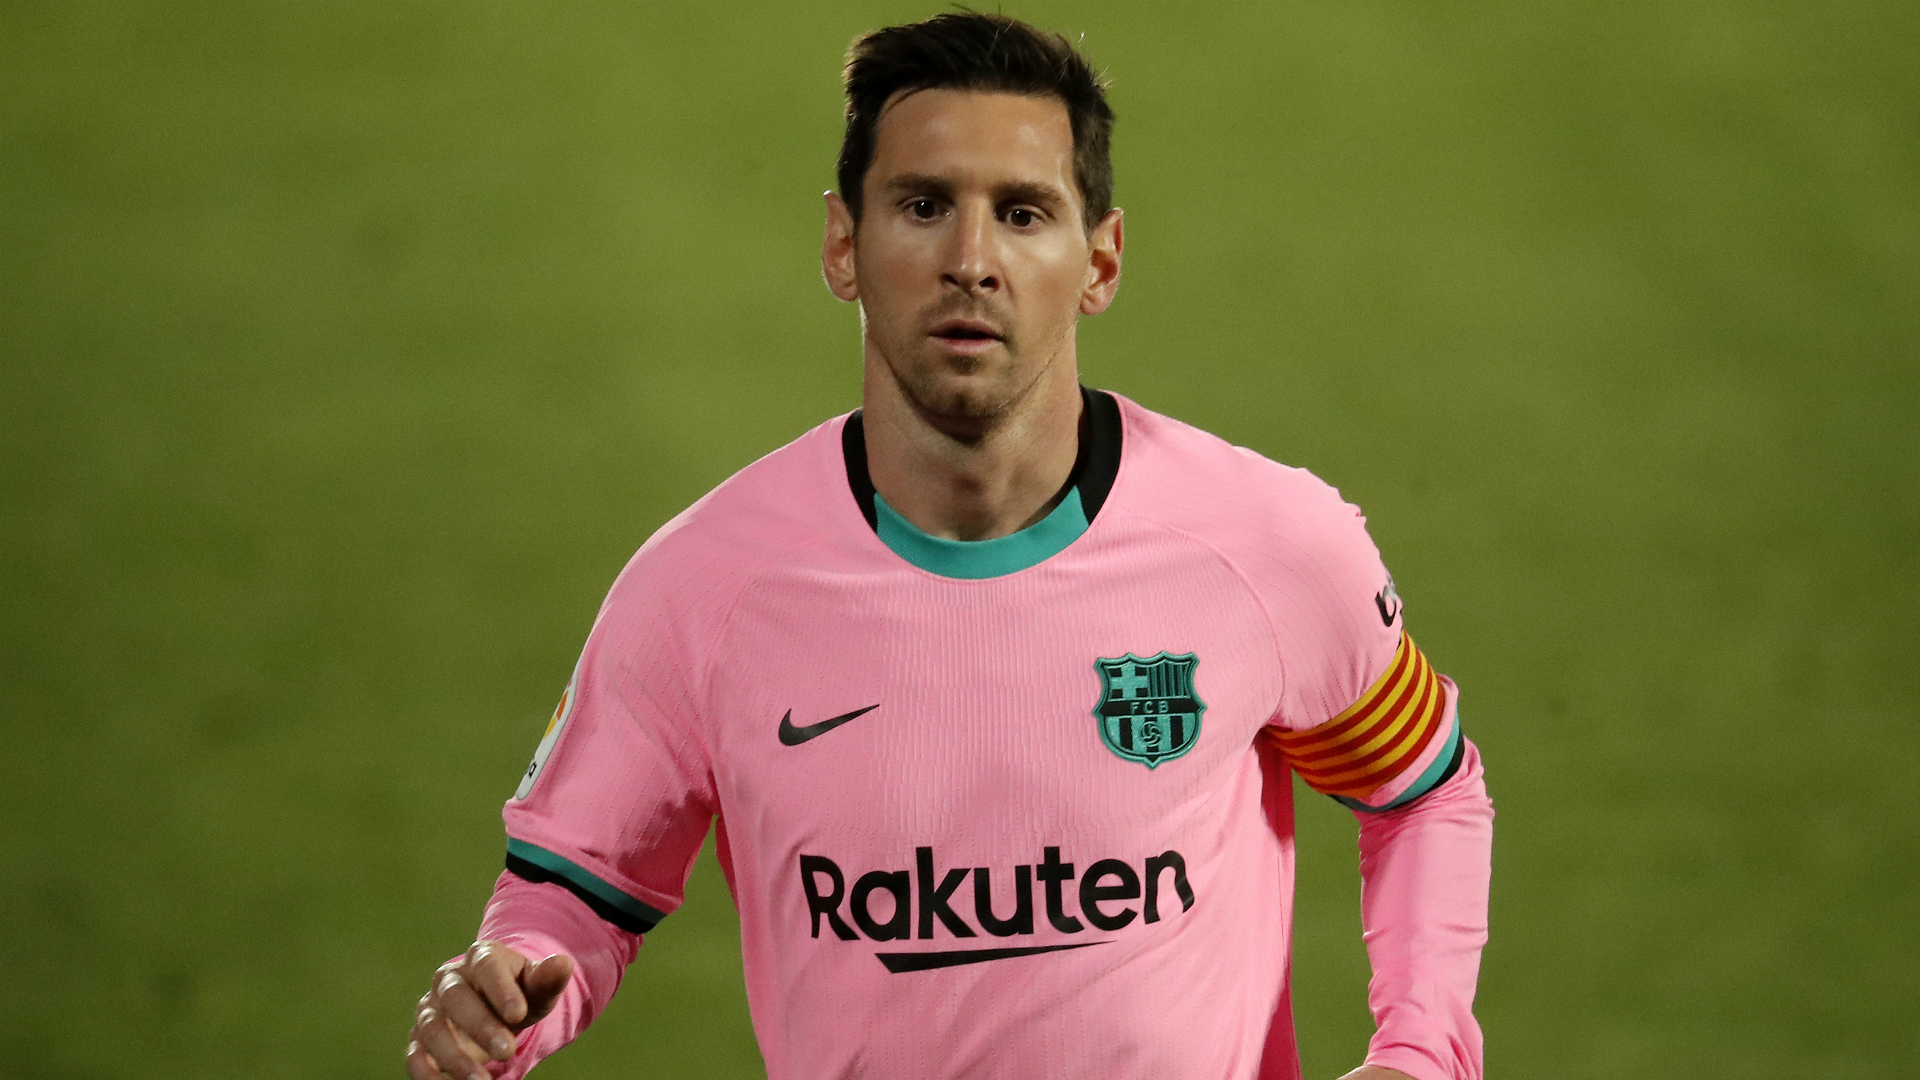 With Lionel Messi coming out of contract, Manchester City are making long-term plans for the star.